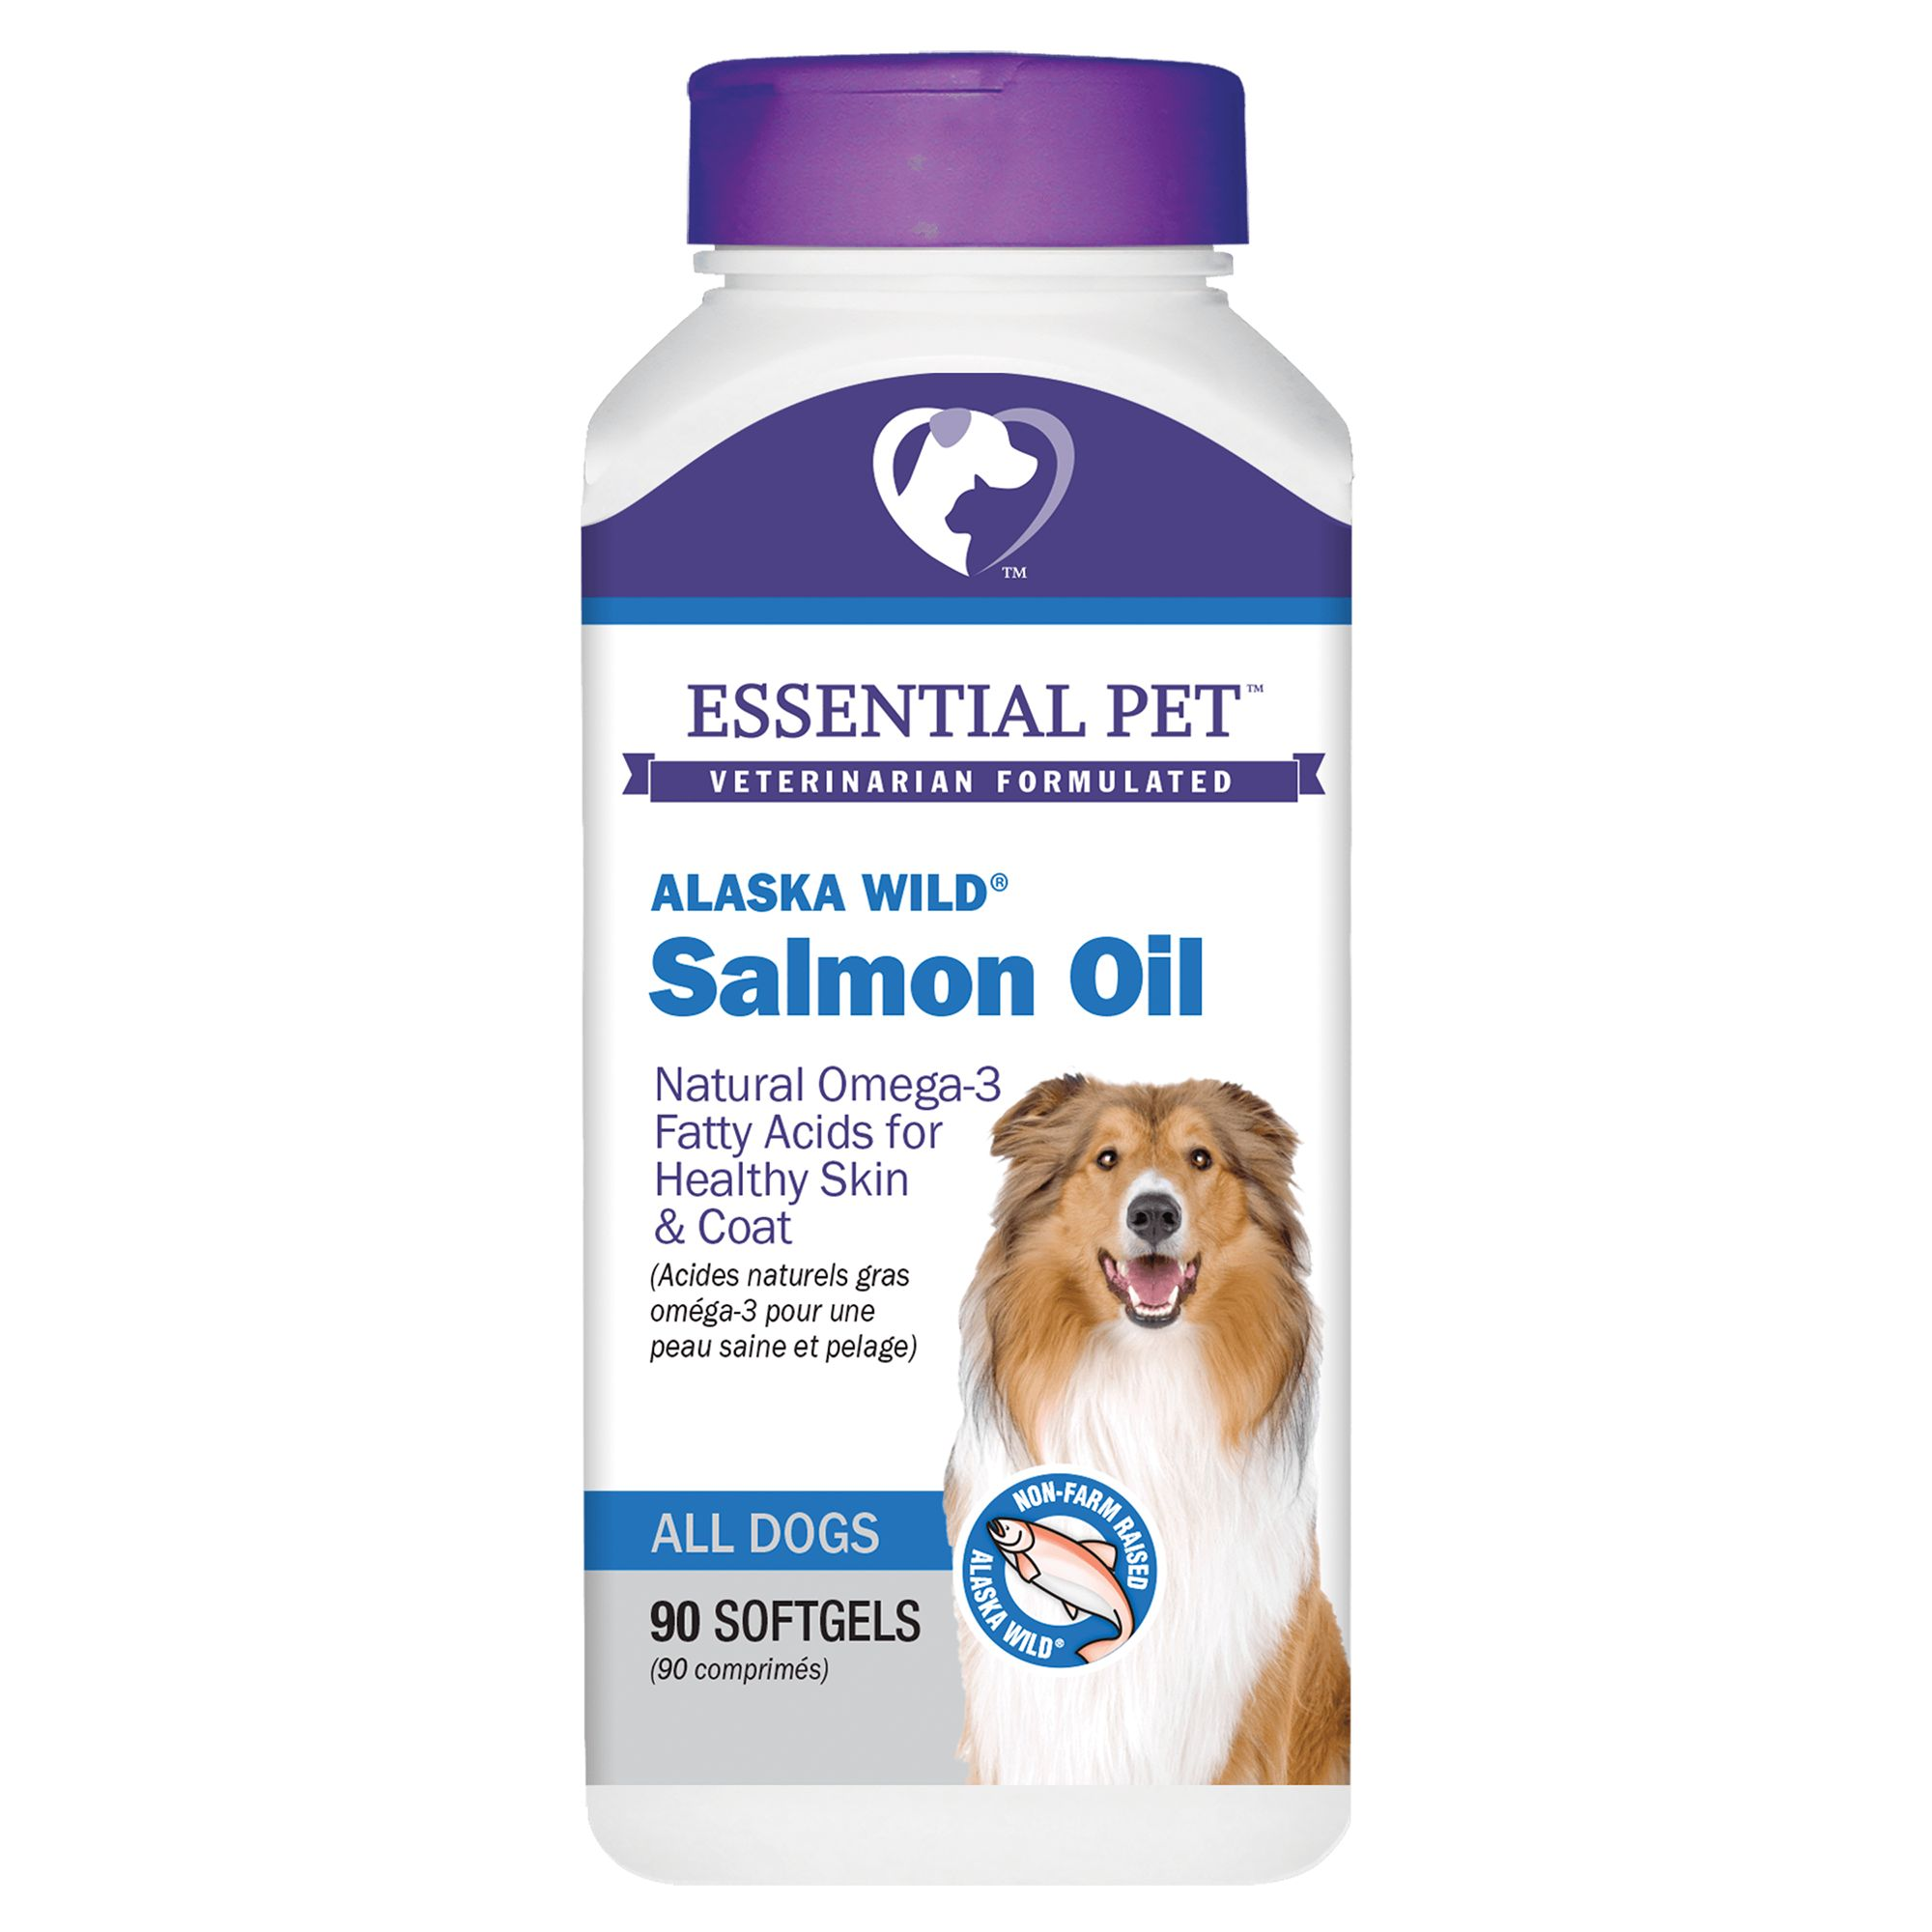 21st Century Alaska Wild Salmon Oil Dog Softgel Size 90 Count